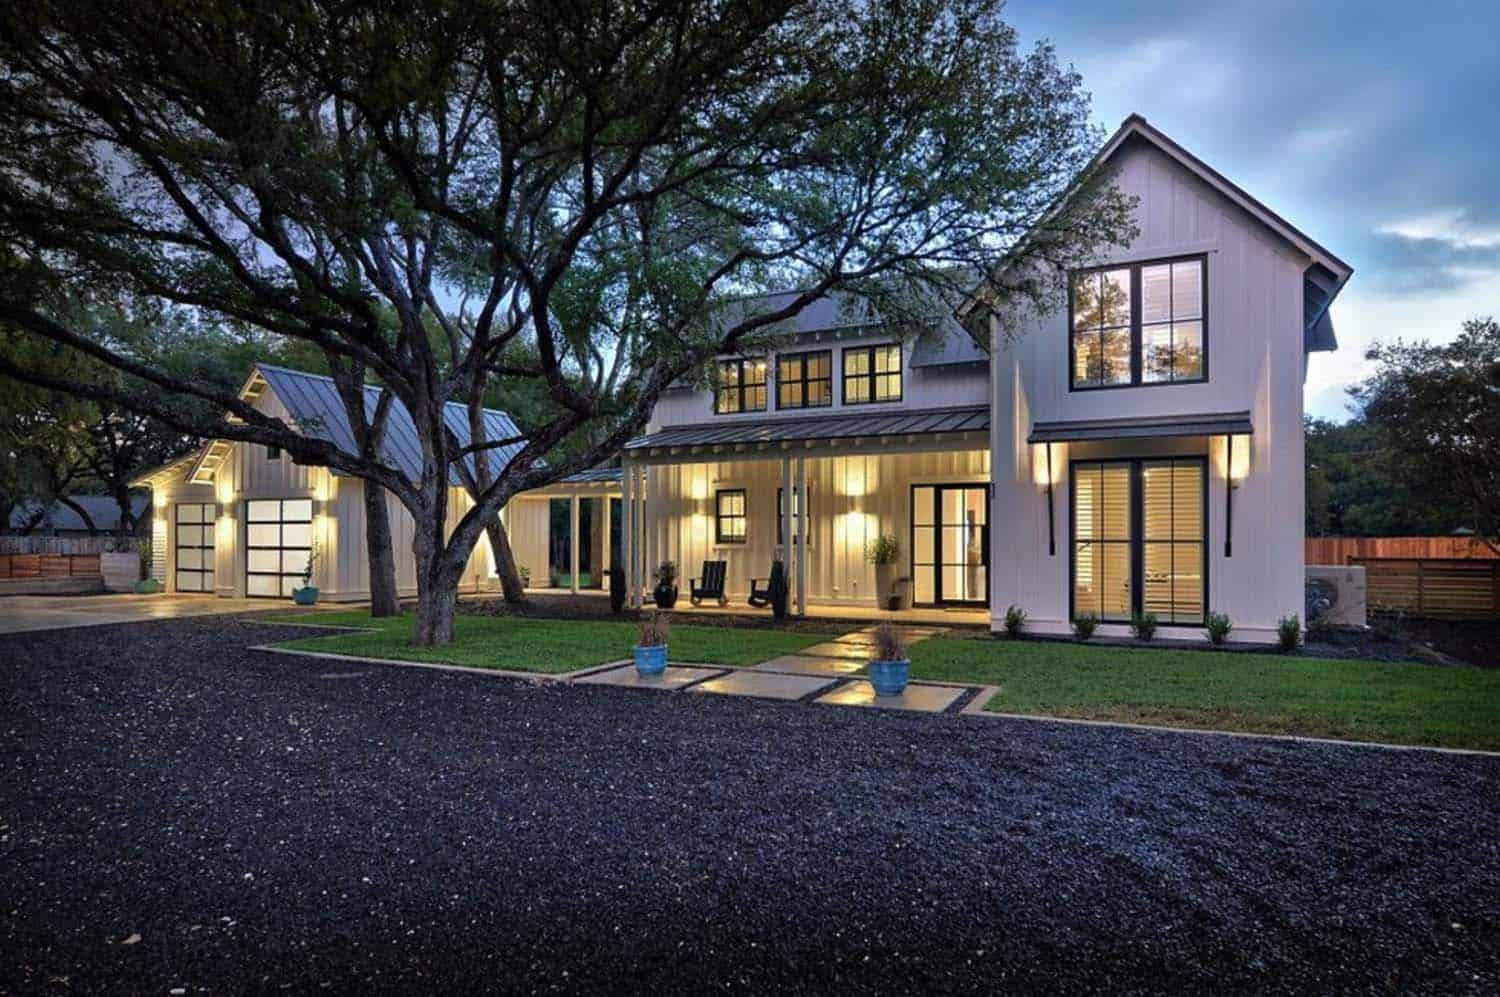 Modernized texas farmhouse filled with eye catching details for French farmhouse house plans